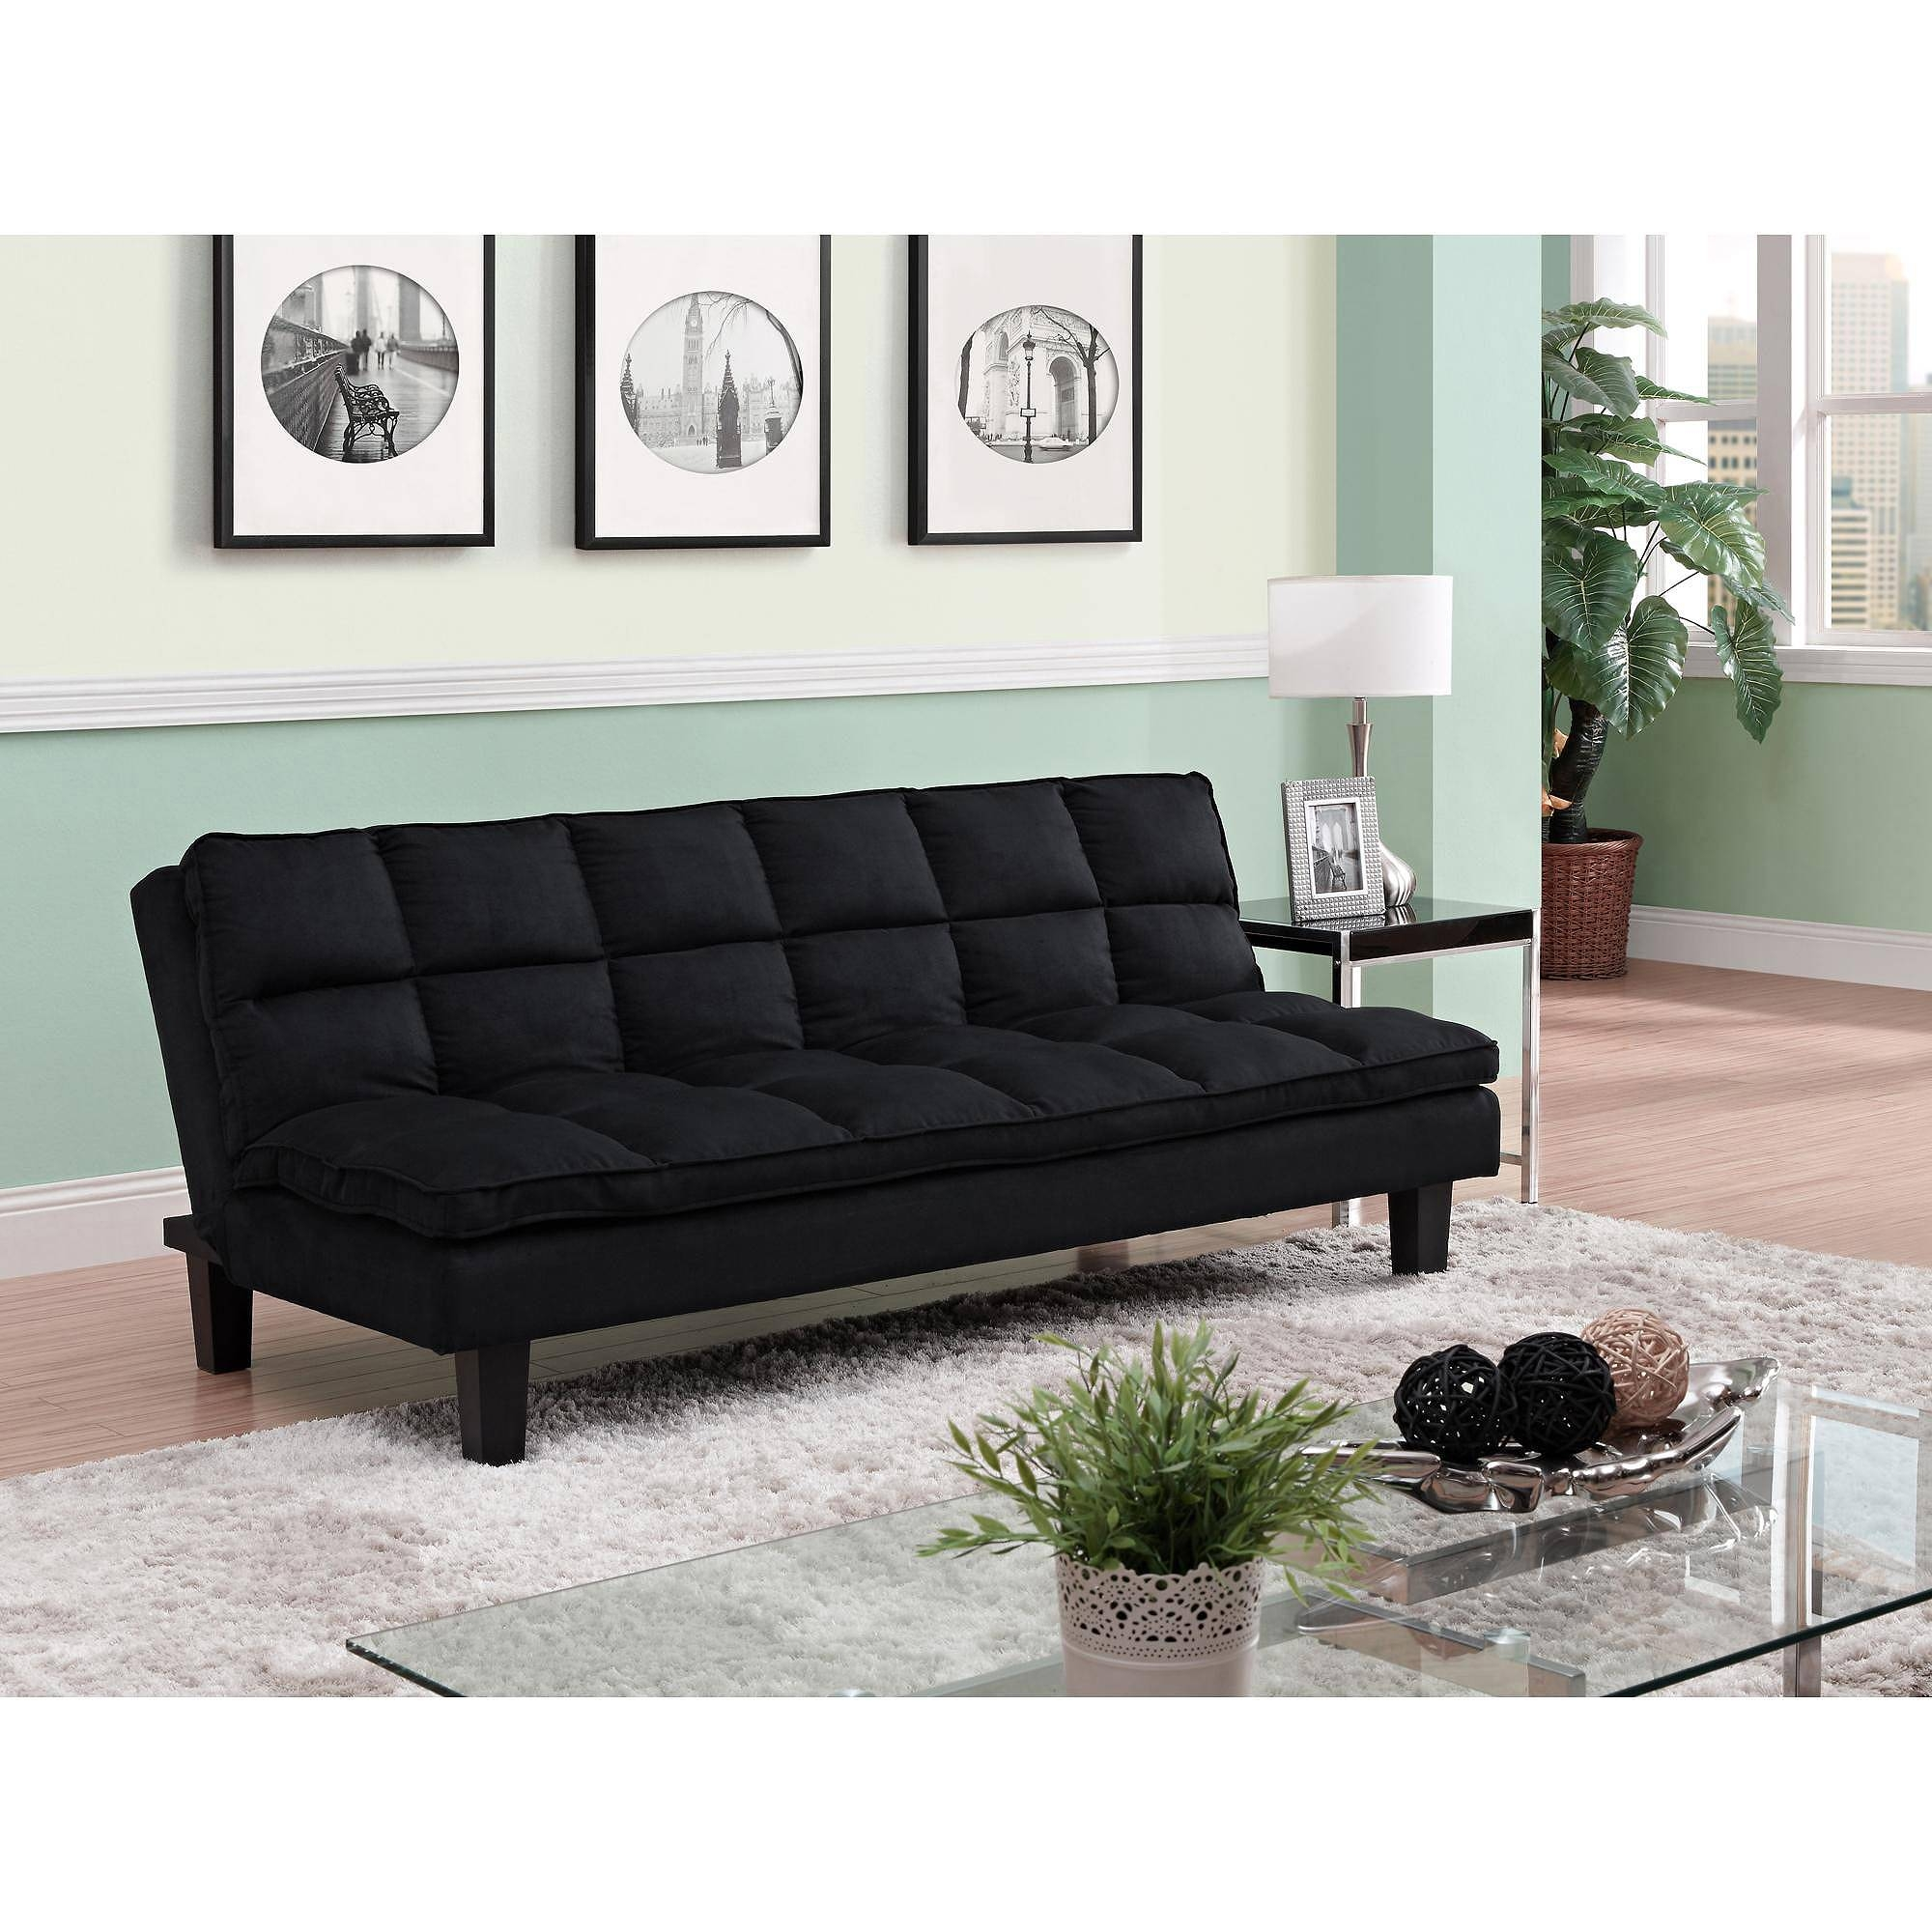 Great Luxury Sofa Beds 72 Sofa Table Ideas With Luxury Sofa Beds regarding Luxury Sofa Beds (Image 7 of 30)